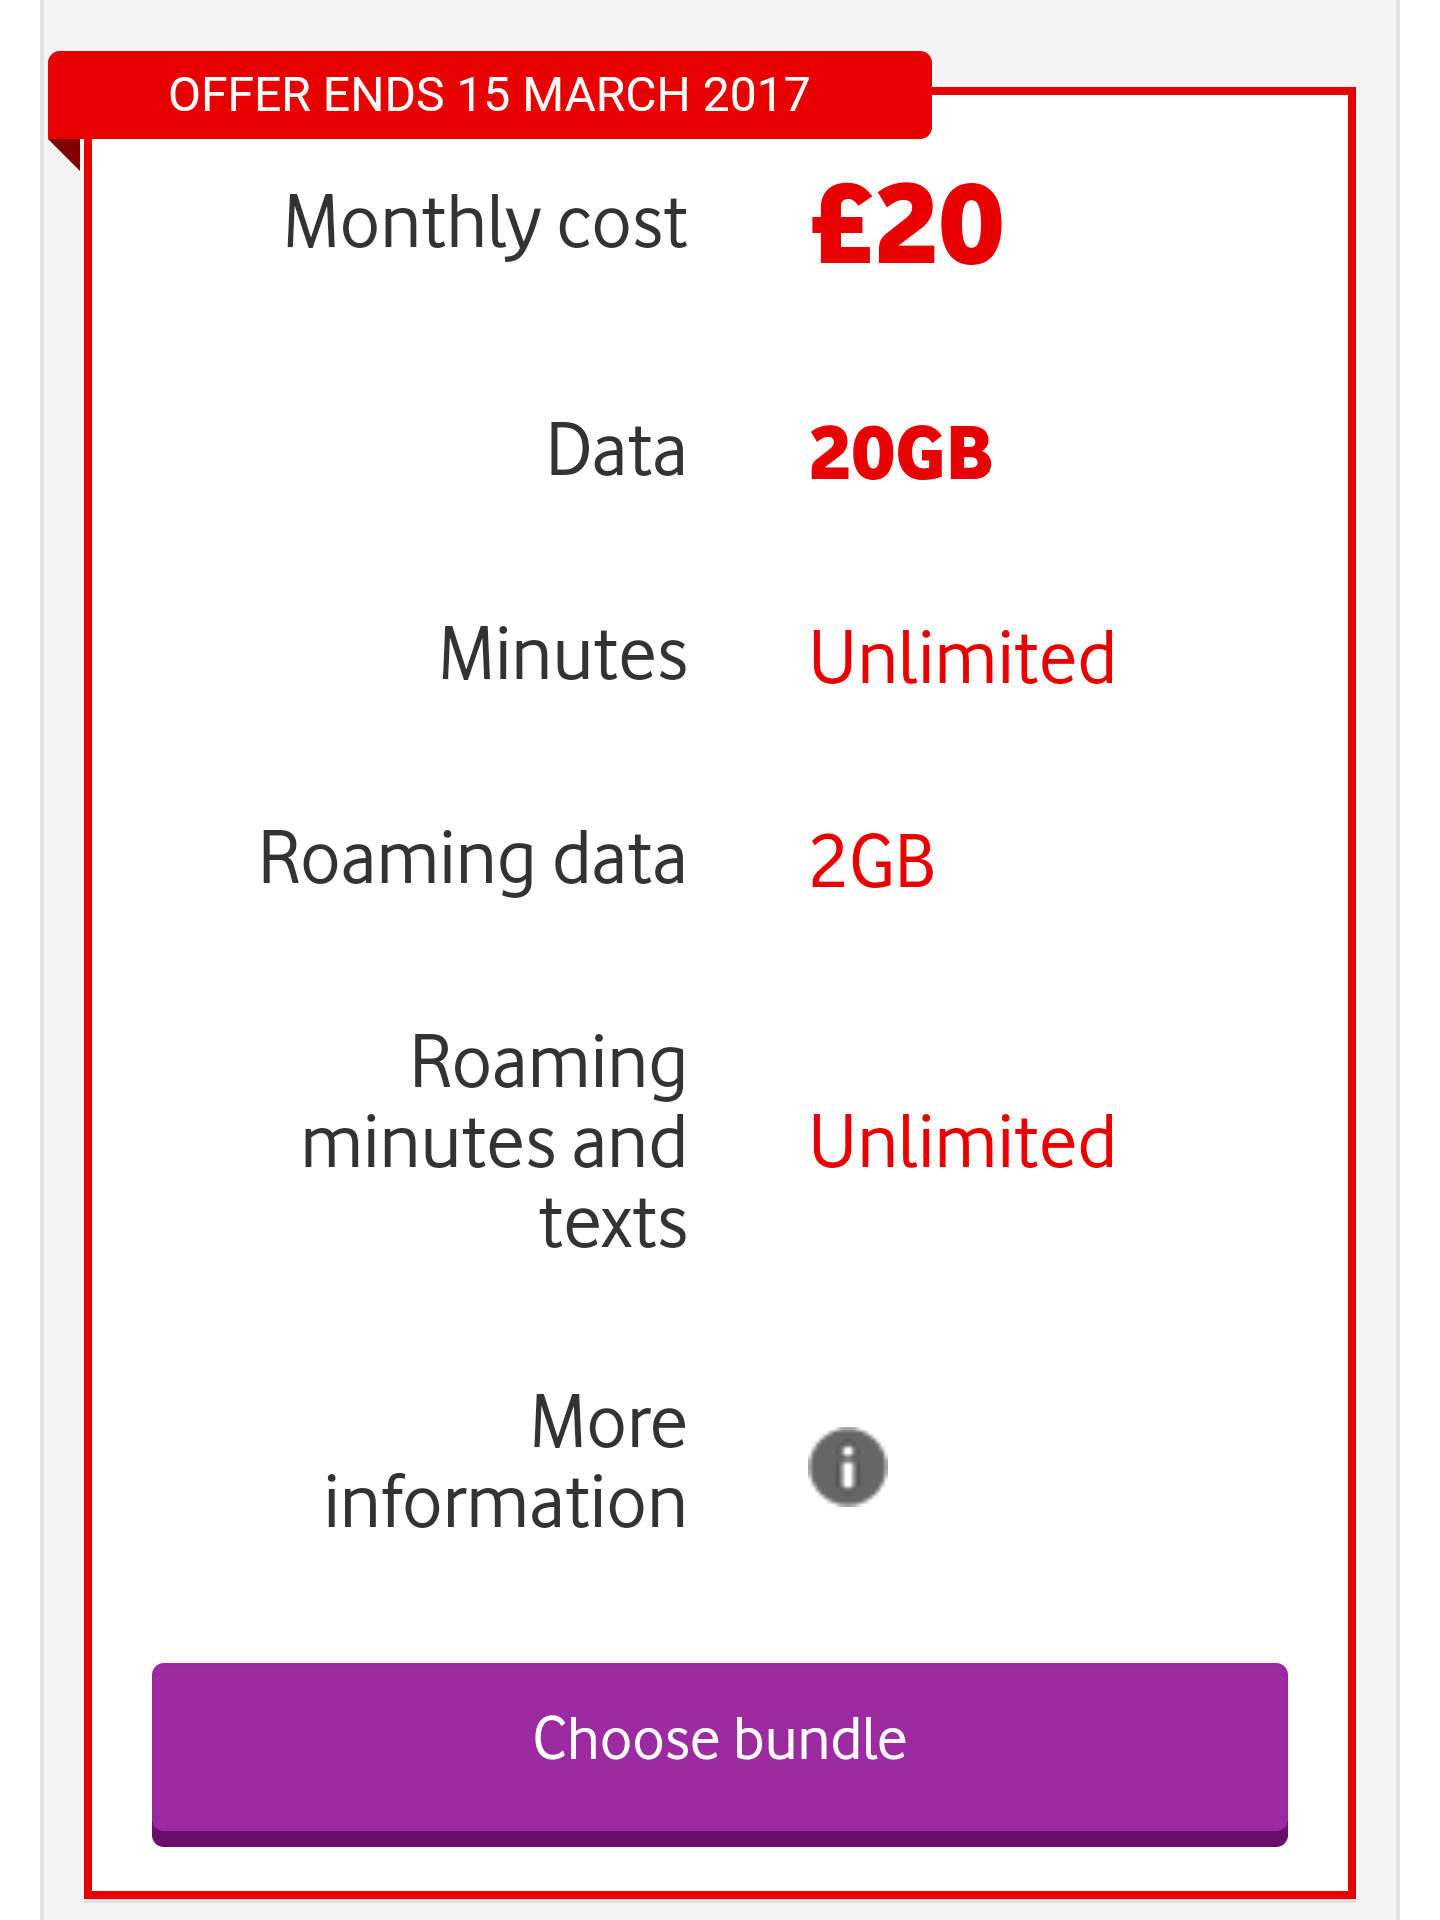 Vodafone sim only deals 3g - Birth boot camp coupon code 2018